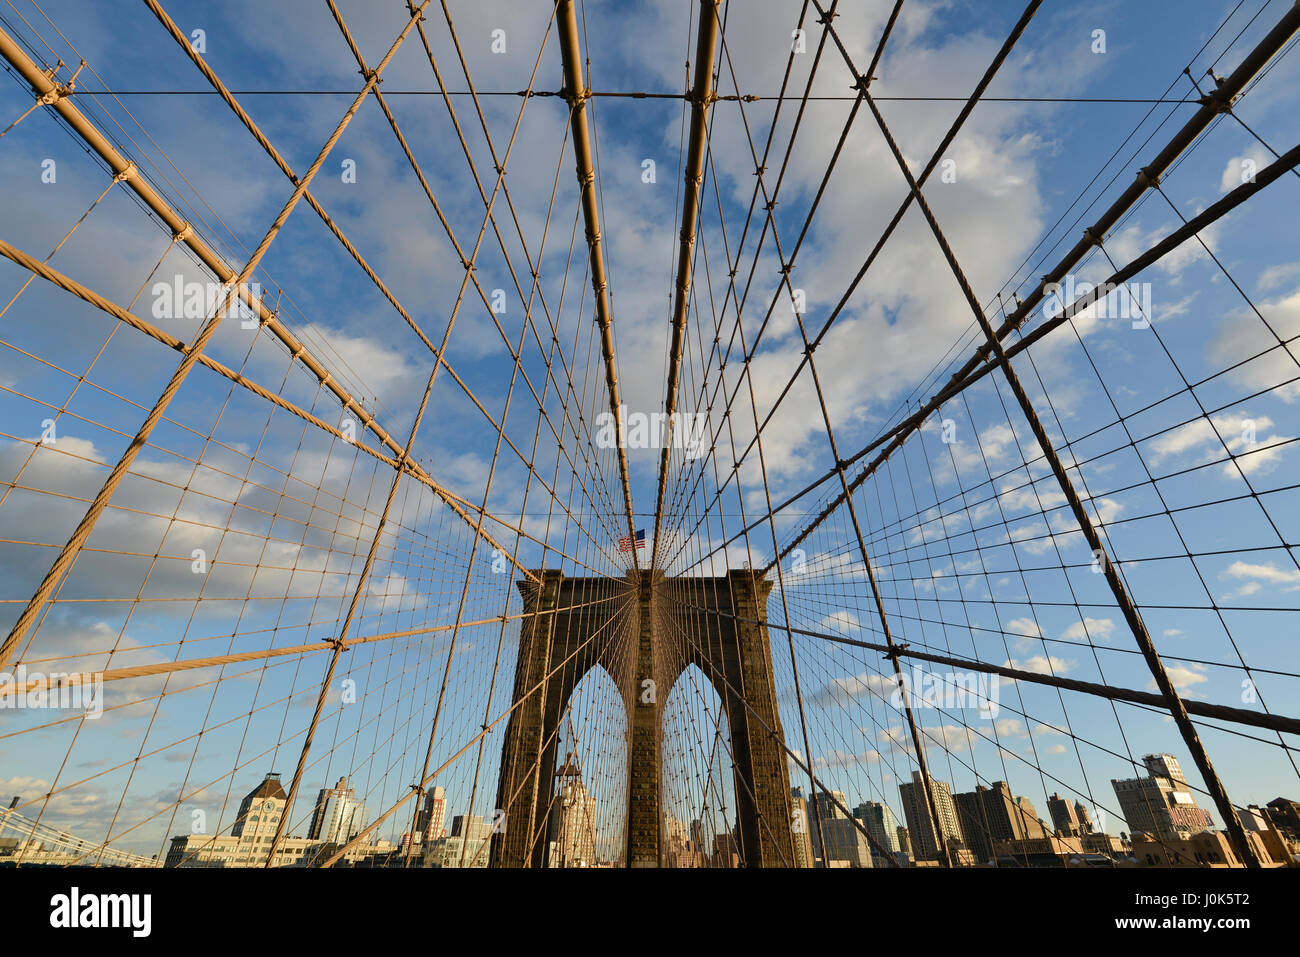 Brooklyn Bridge, New York, Usa - Stock Image